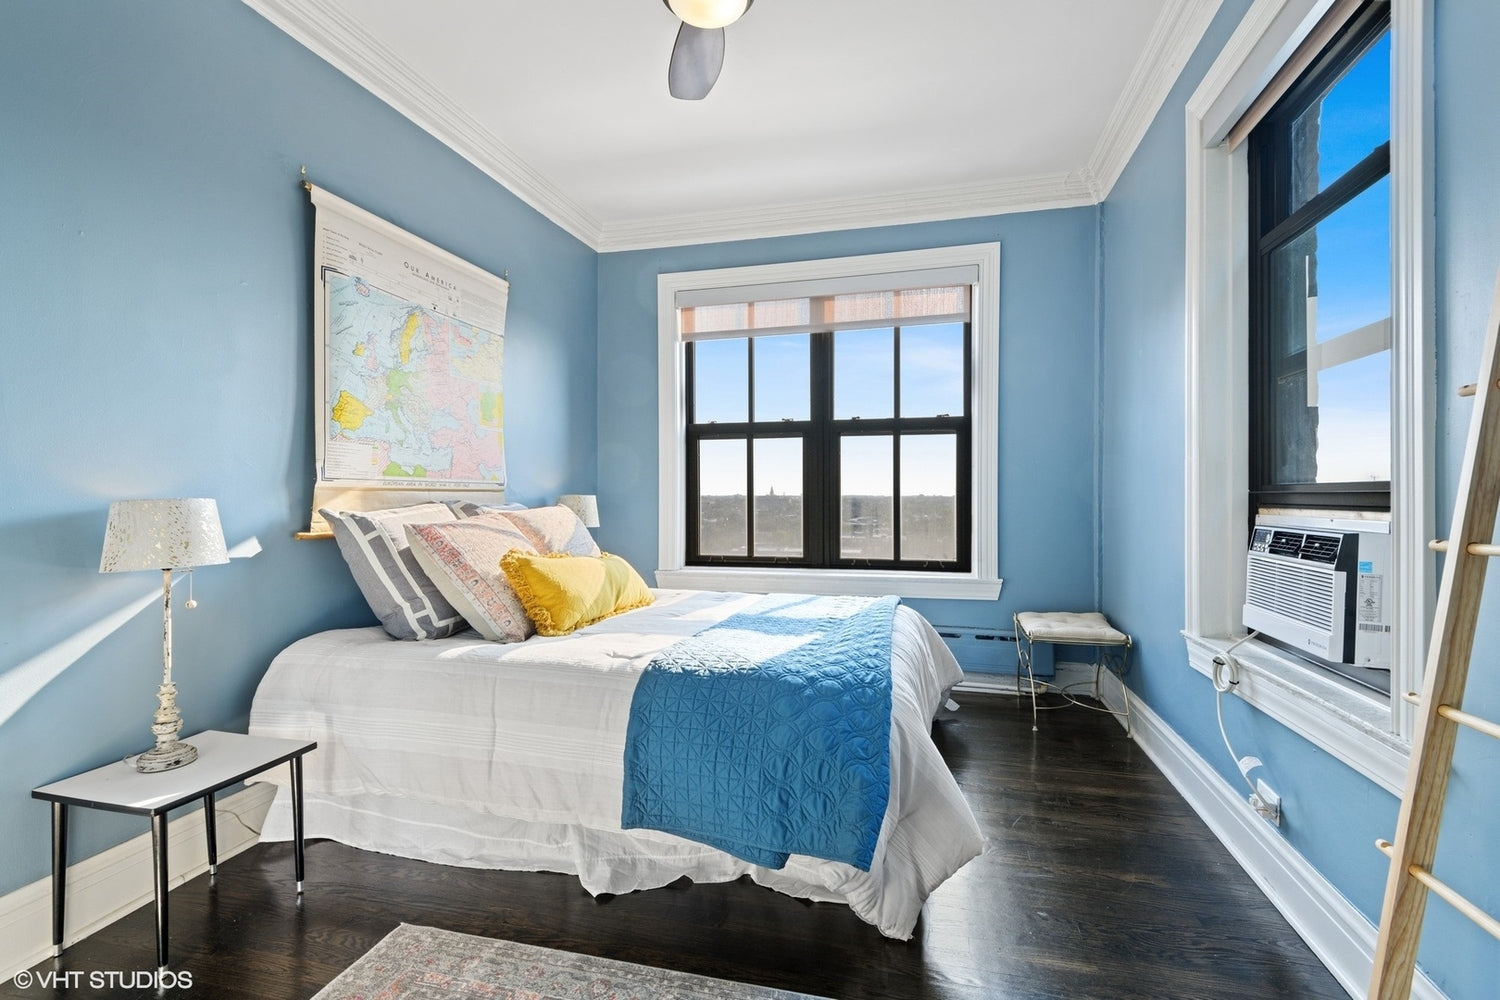 See apartments for sale on the Chicago lakefront and more from Eskell's home staging Chicago.